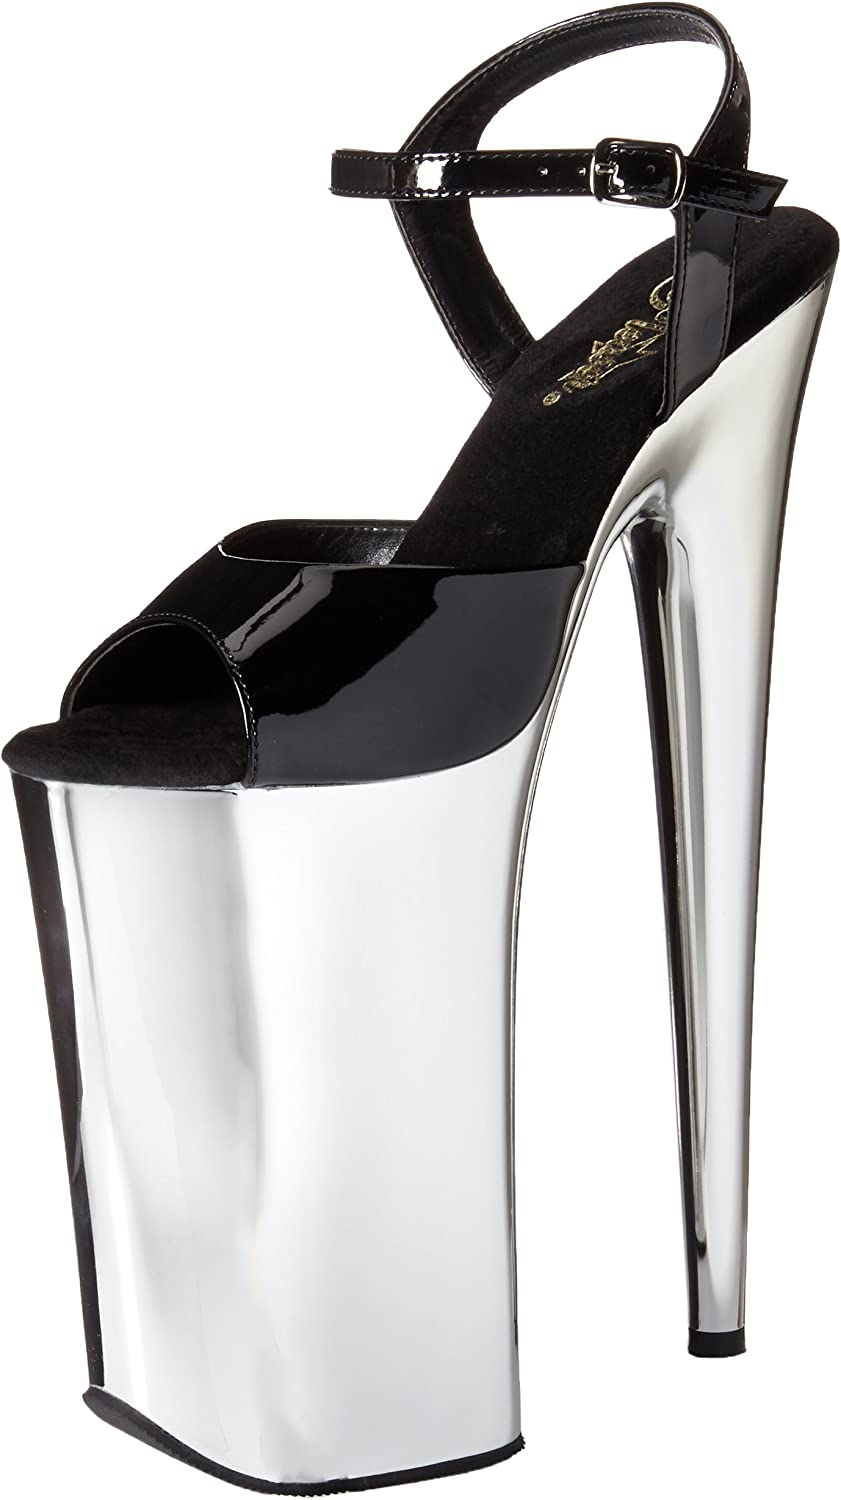 Pleaser Pleaser BEYOND-009 Blk SLV Chrome UK 4 (EU 37)  billiger Laden